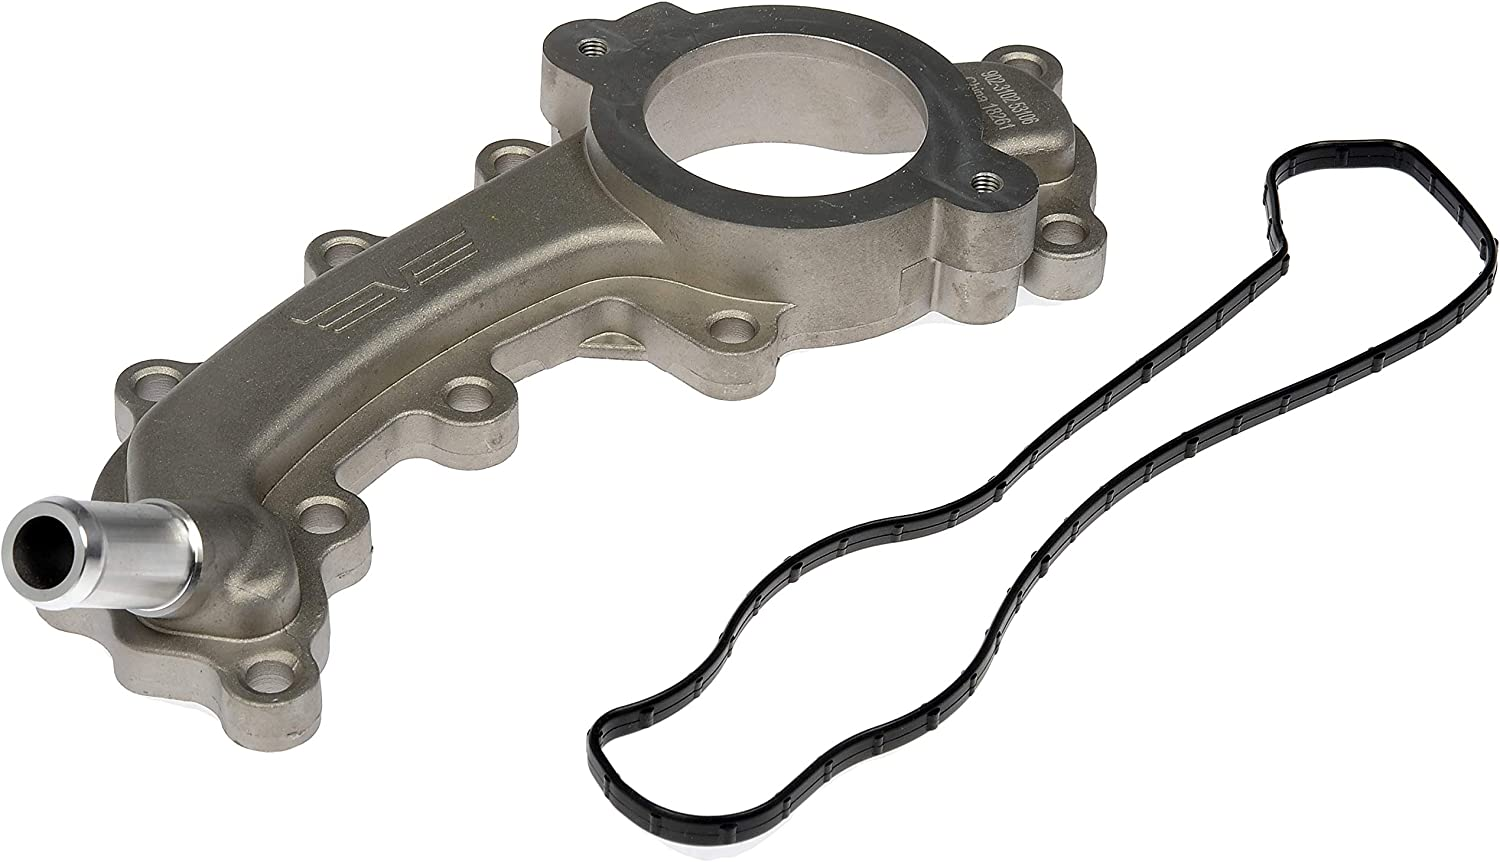 Dorman 902-3102HP Engine Coolant Crossover Select for Pipe Model OFFicial shop San Diego Mall